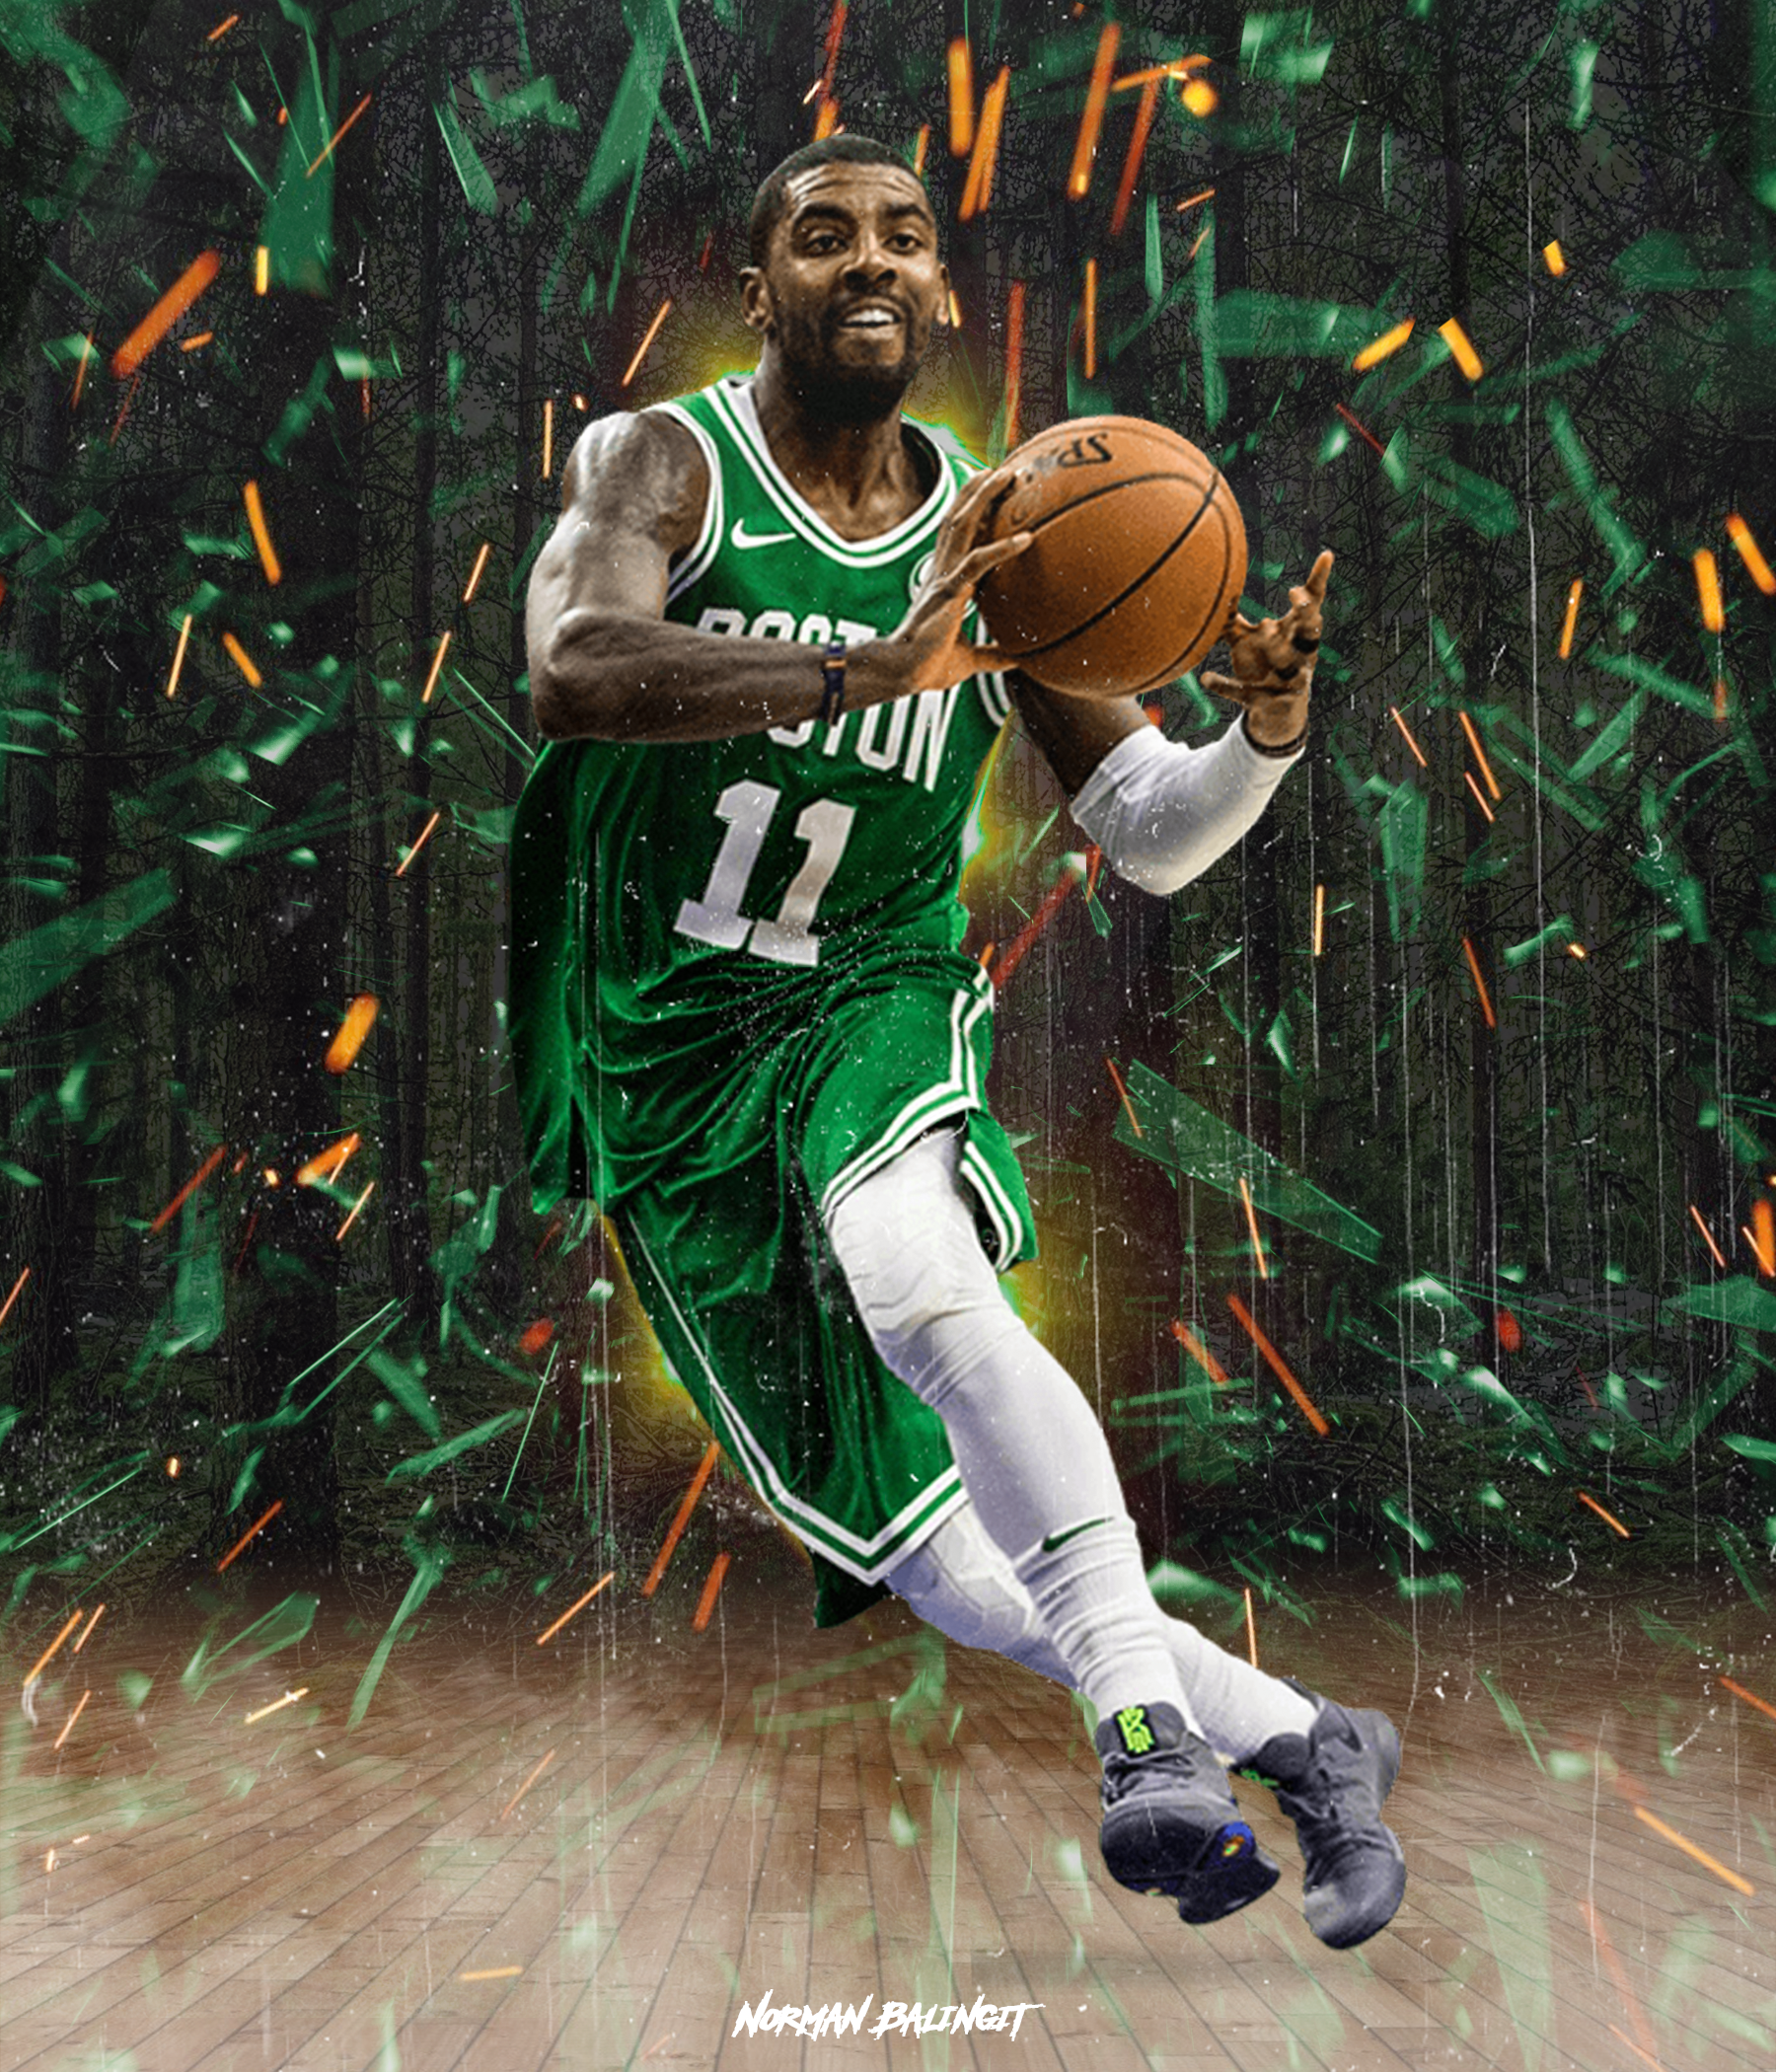 Kyrie Irving Poster Wallpaper Kyrie Irving Celtics Kyrie Irving Kyrie